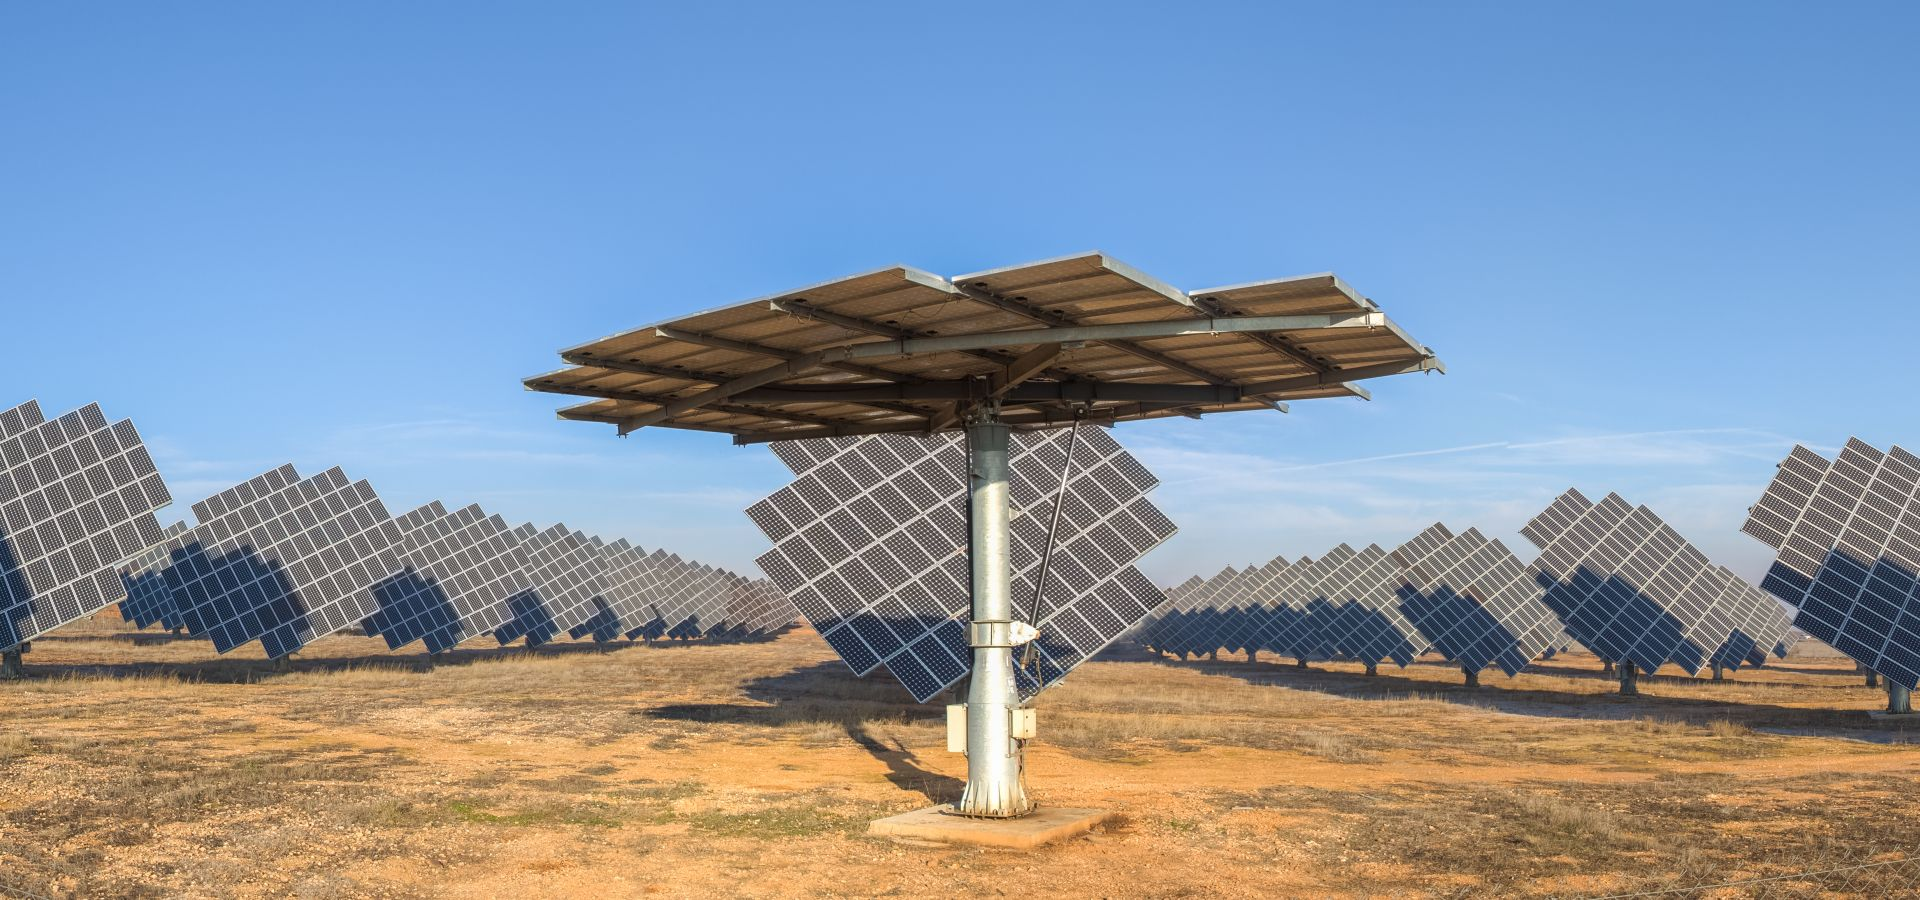 Panoramic view of the photovoltaic power station of Cariñena, Zaragoza, Spain